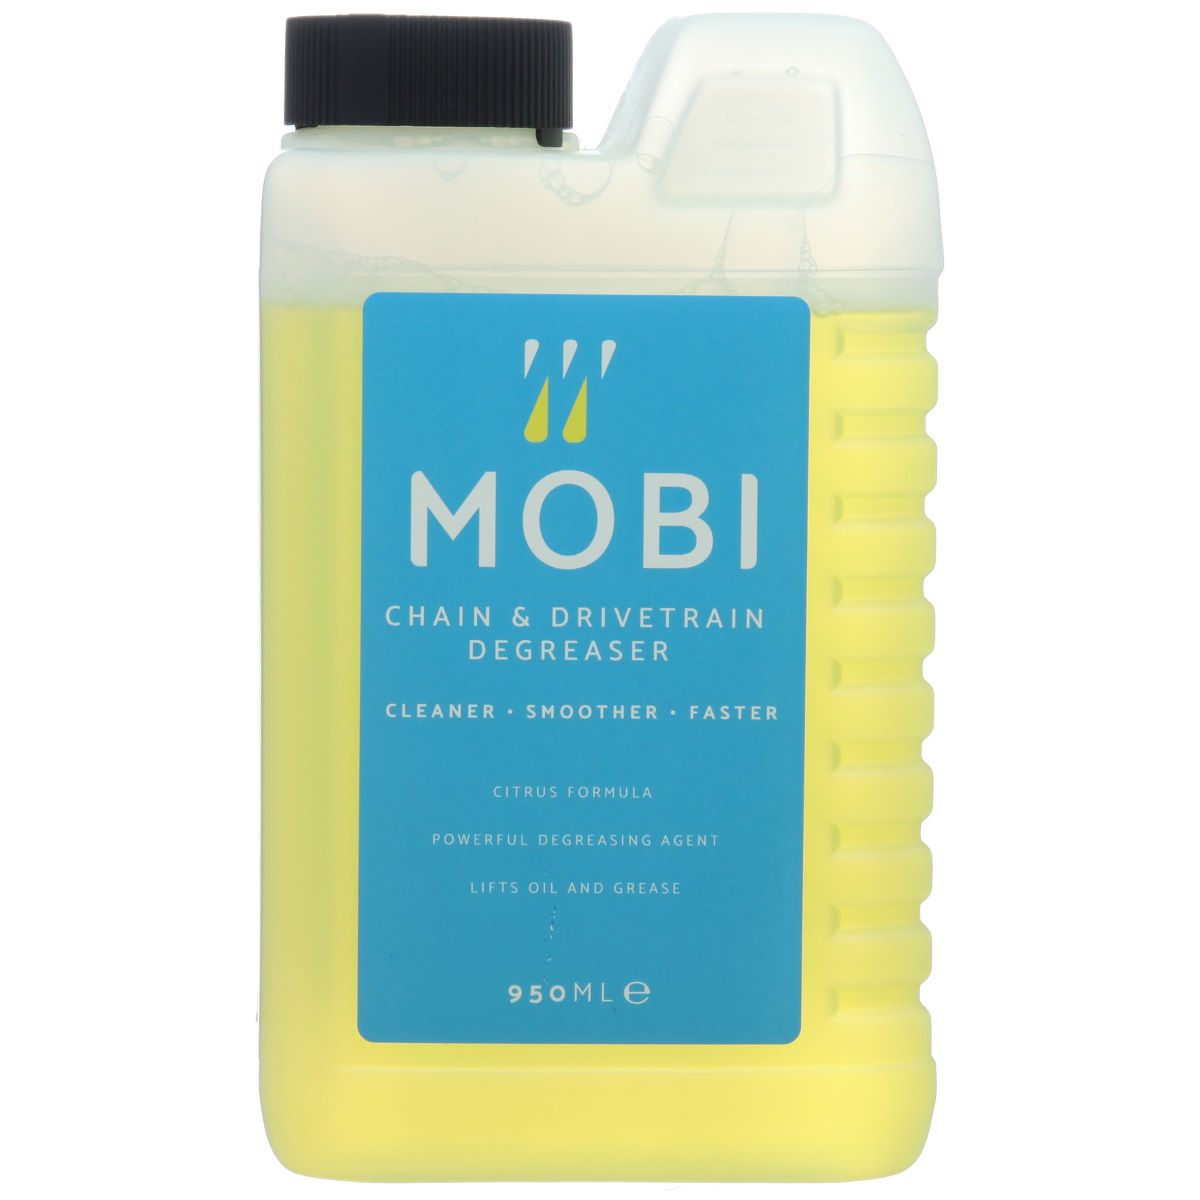 Mobi Citrus Degreaser Chain Cleaner 950ml - 950ml  Cleaning Products